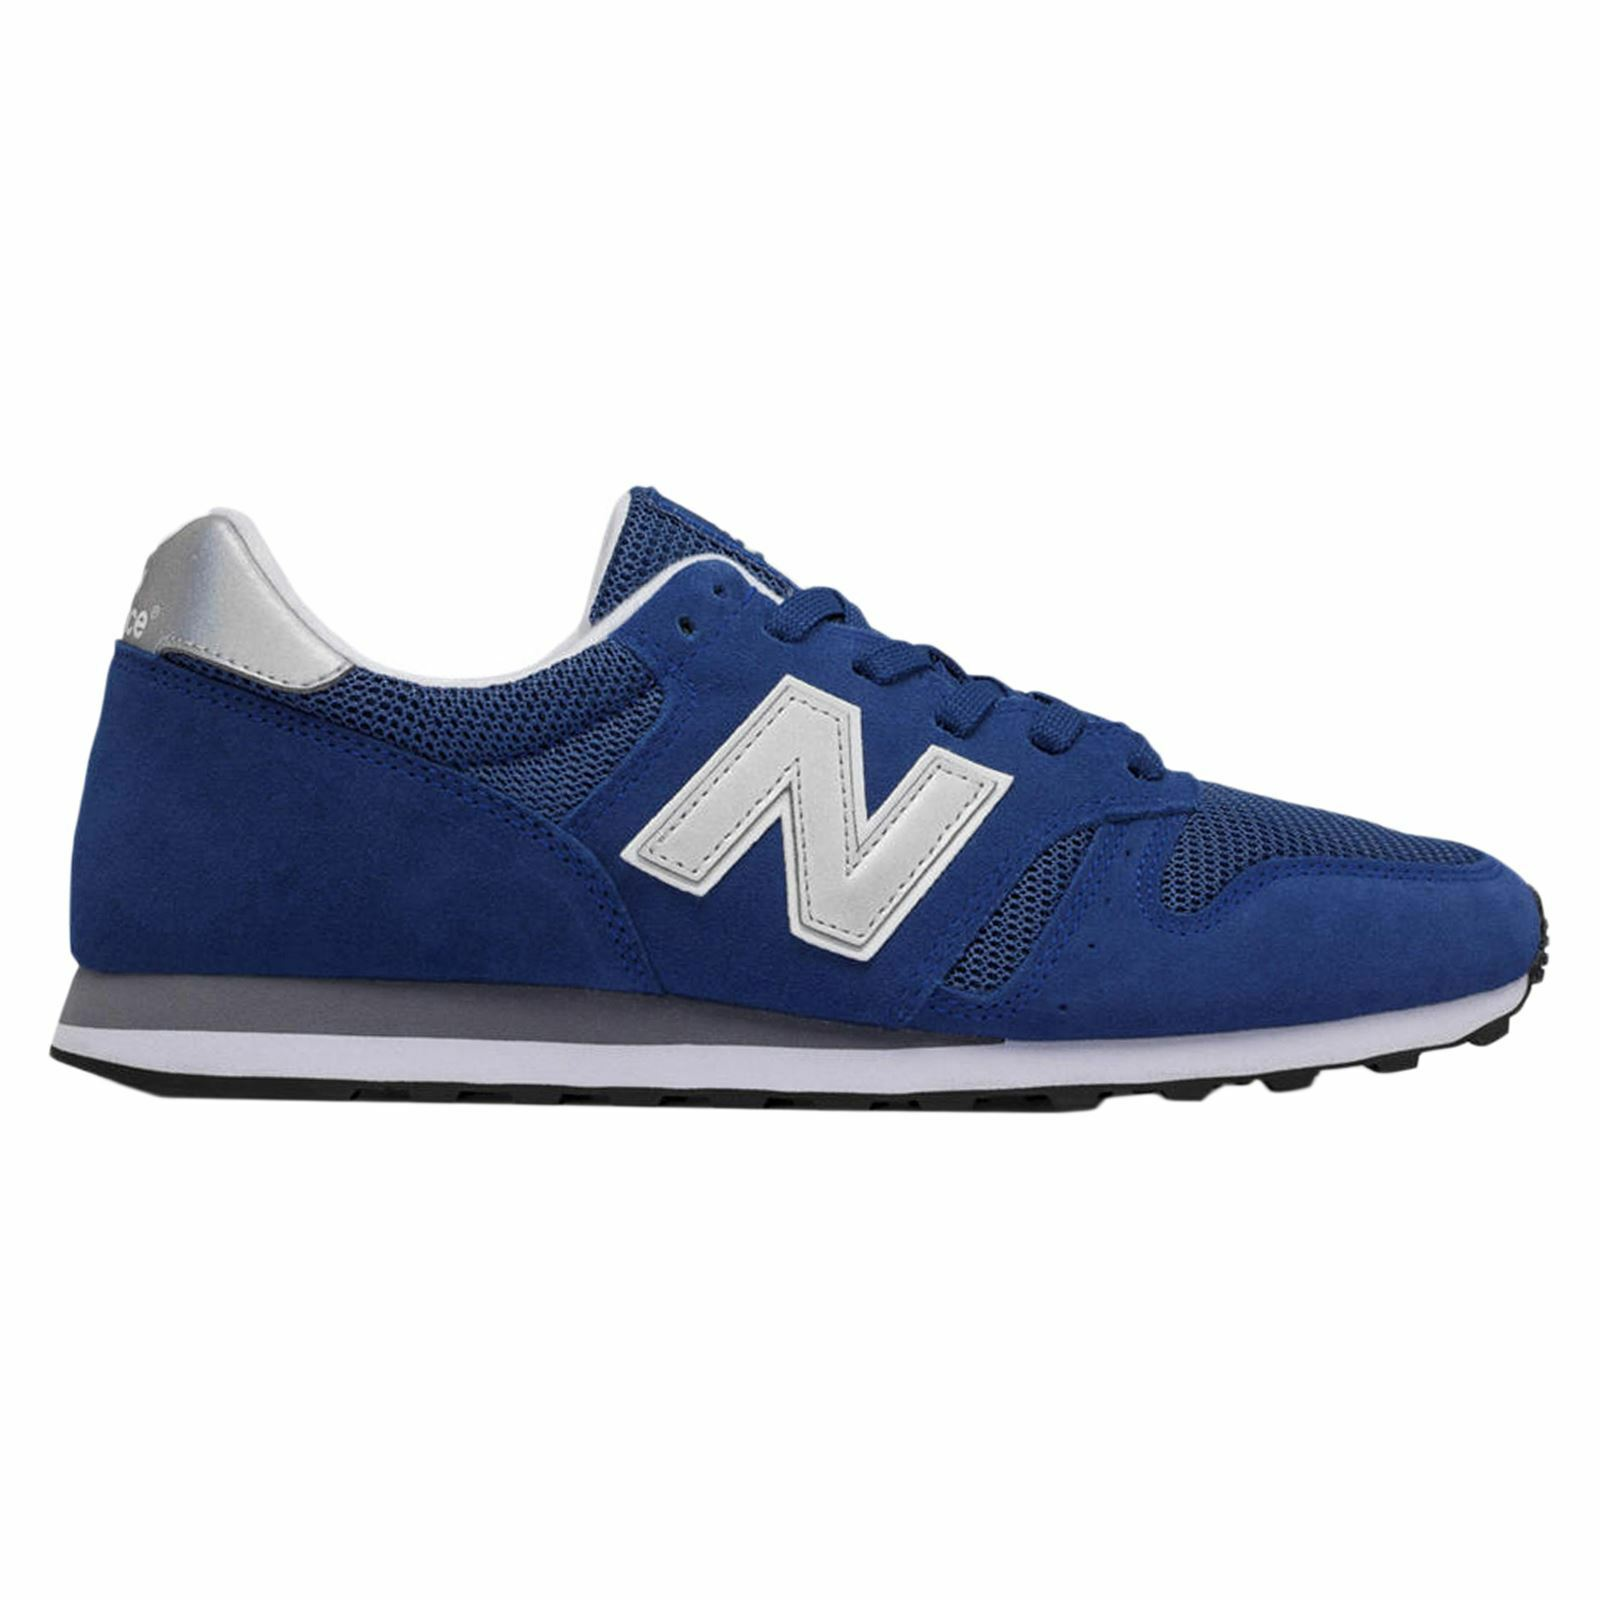 New Balance 373 bluee Mens Suede Mesh Low Top Trainers